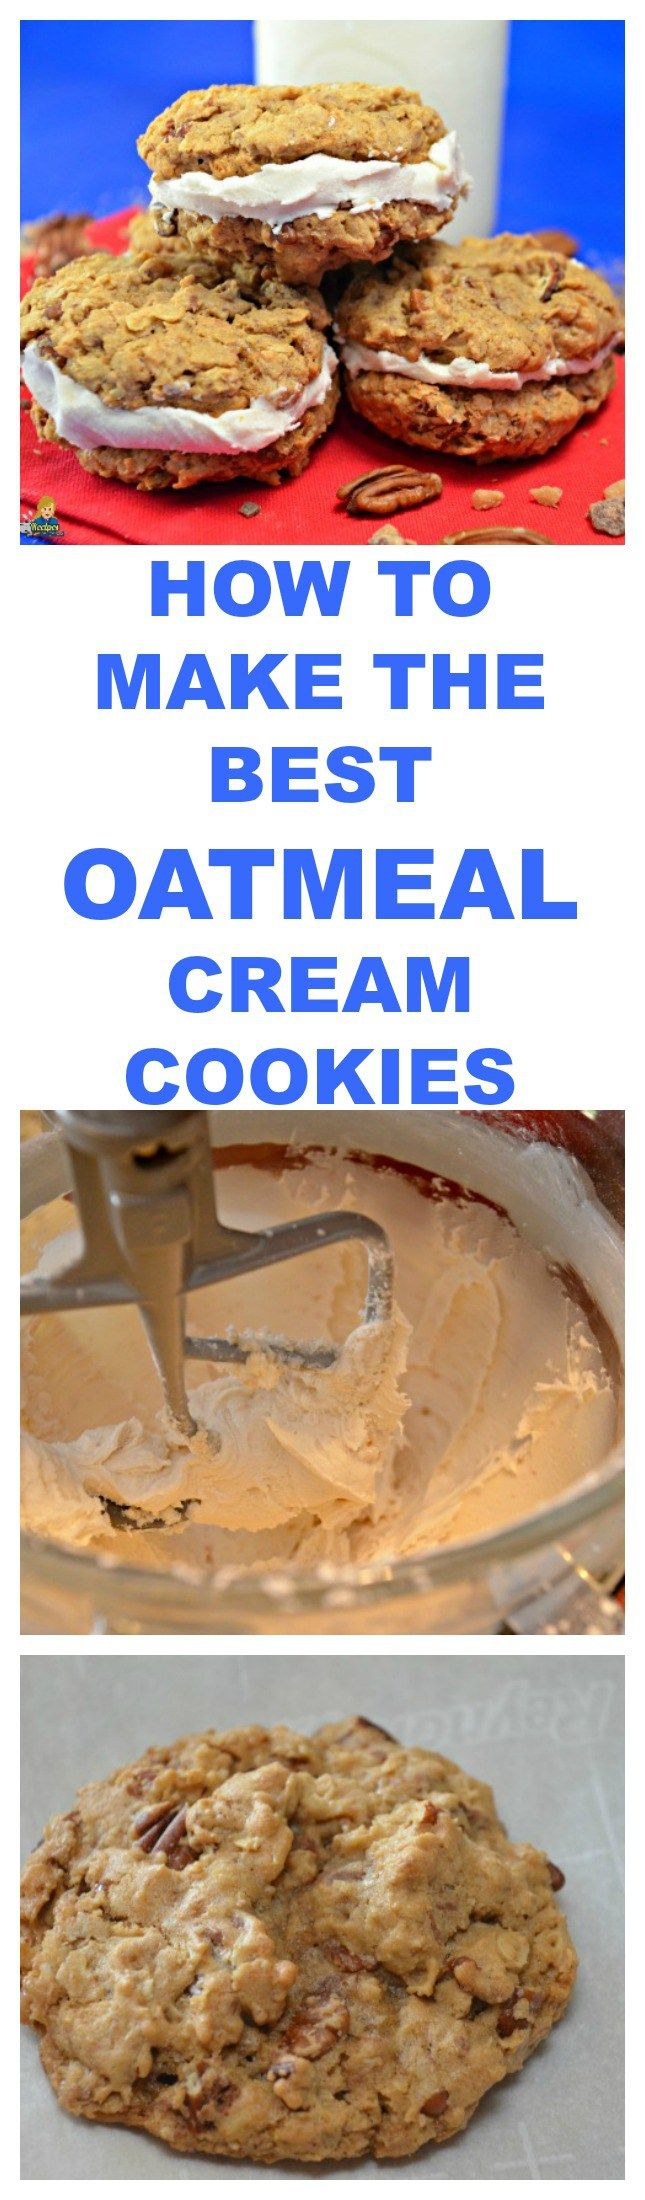 HOW TO MAKE THE BEST OATMEAL CREAM COOKIES - These oatmeal cookies are crunchy on the outside, chewy on the inside and filled with a delicious cream filling.   PRINT THESE RECIPES: http://recipesforourdailybread.com/best-oatmeal-cream-cookies/